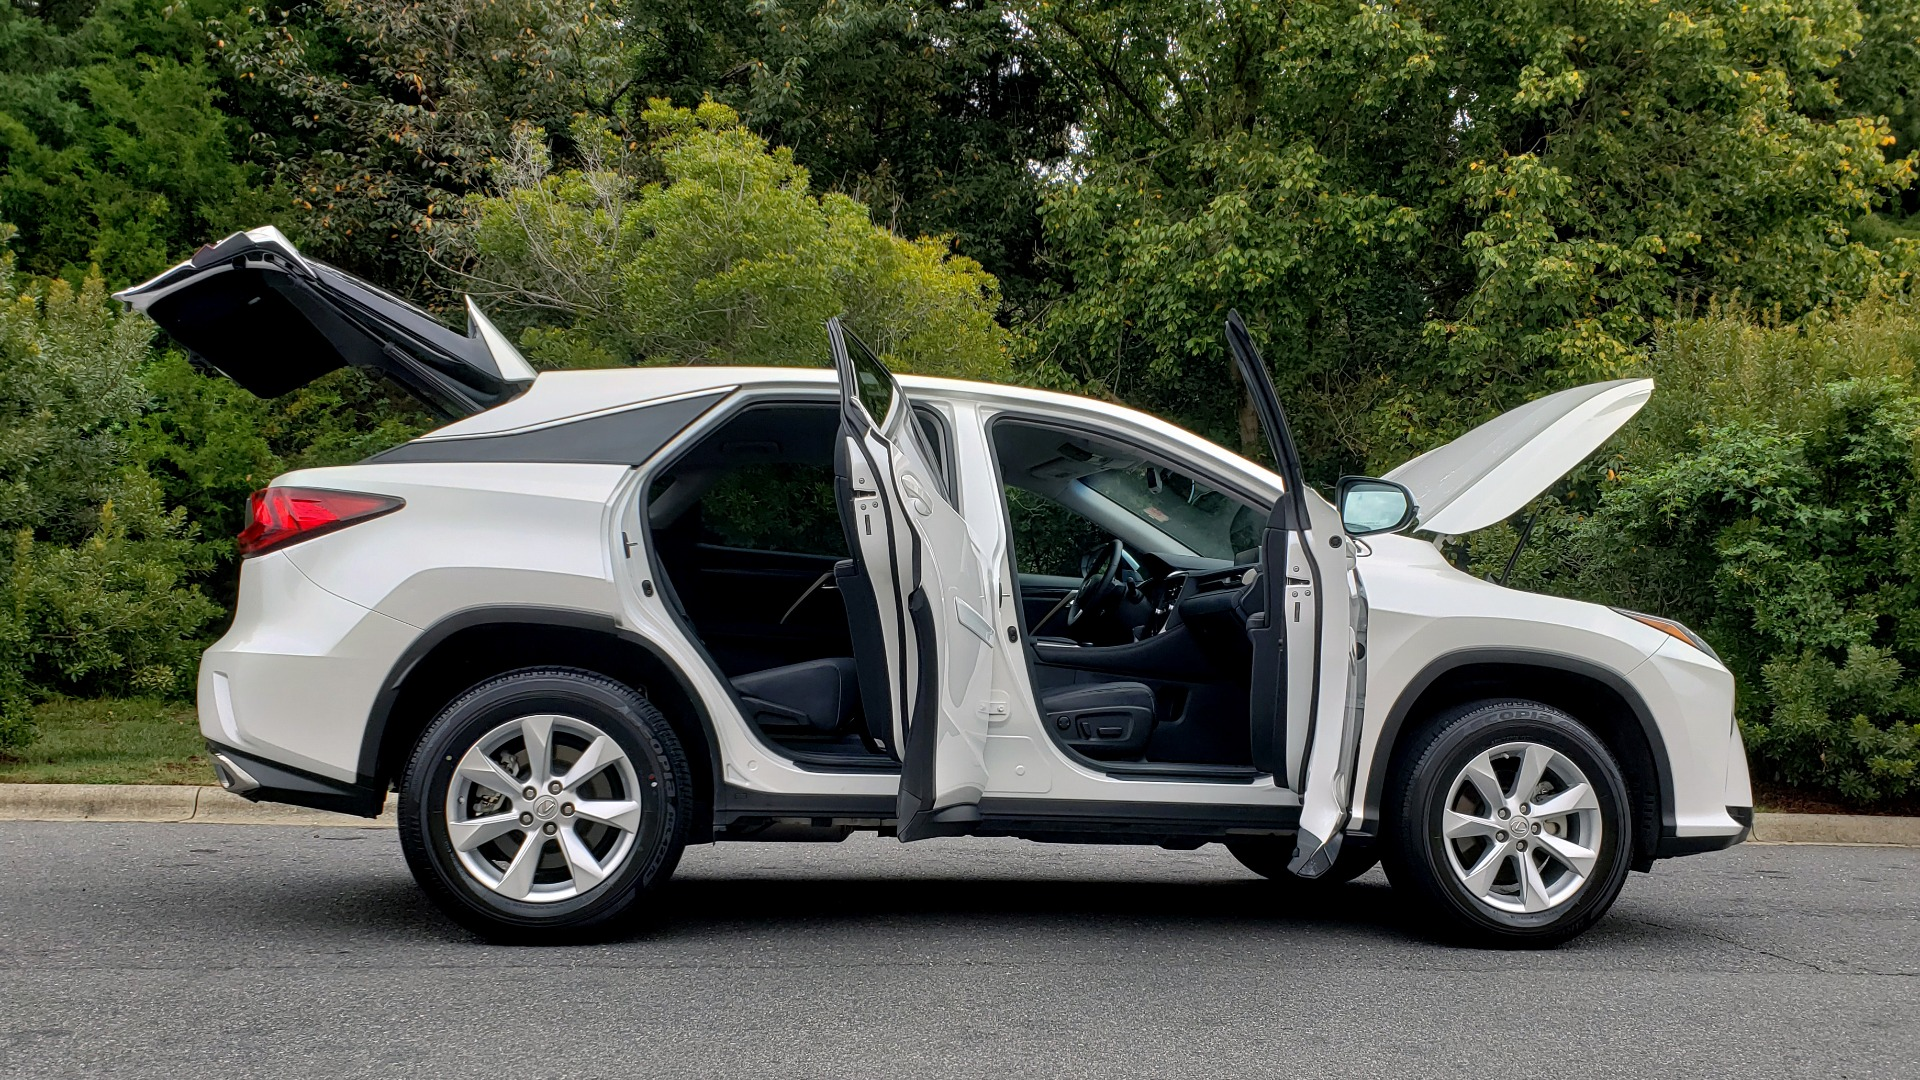 Used 2016 Lexus RX 350 FWD / 4-DR / 3.5L V6 / 8-SPD AUTO / LEATHER / REARVIEW for sale $31,995 at Formula Imports in Charlotte NC 28227 11